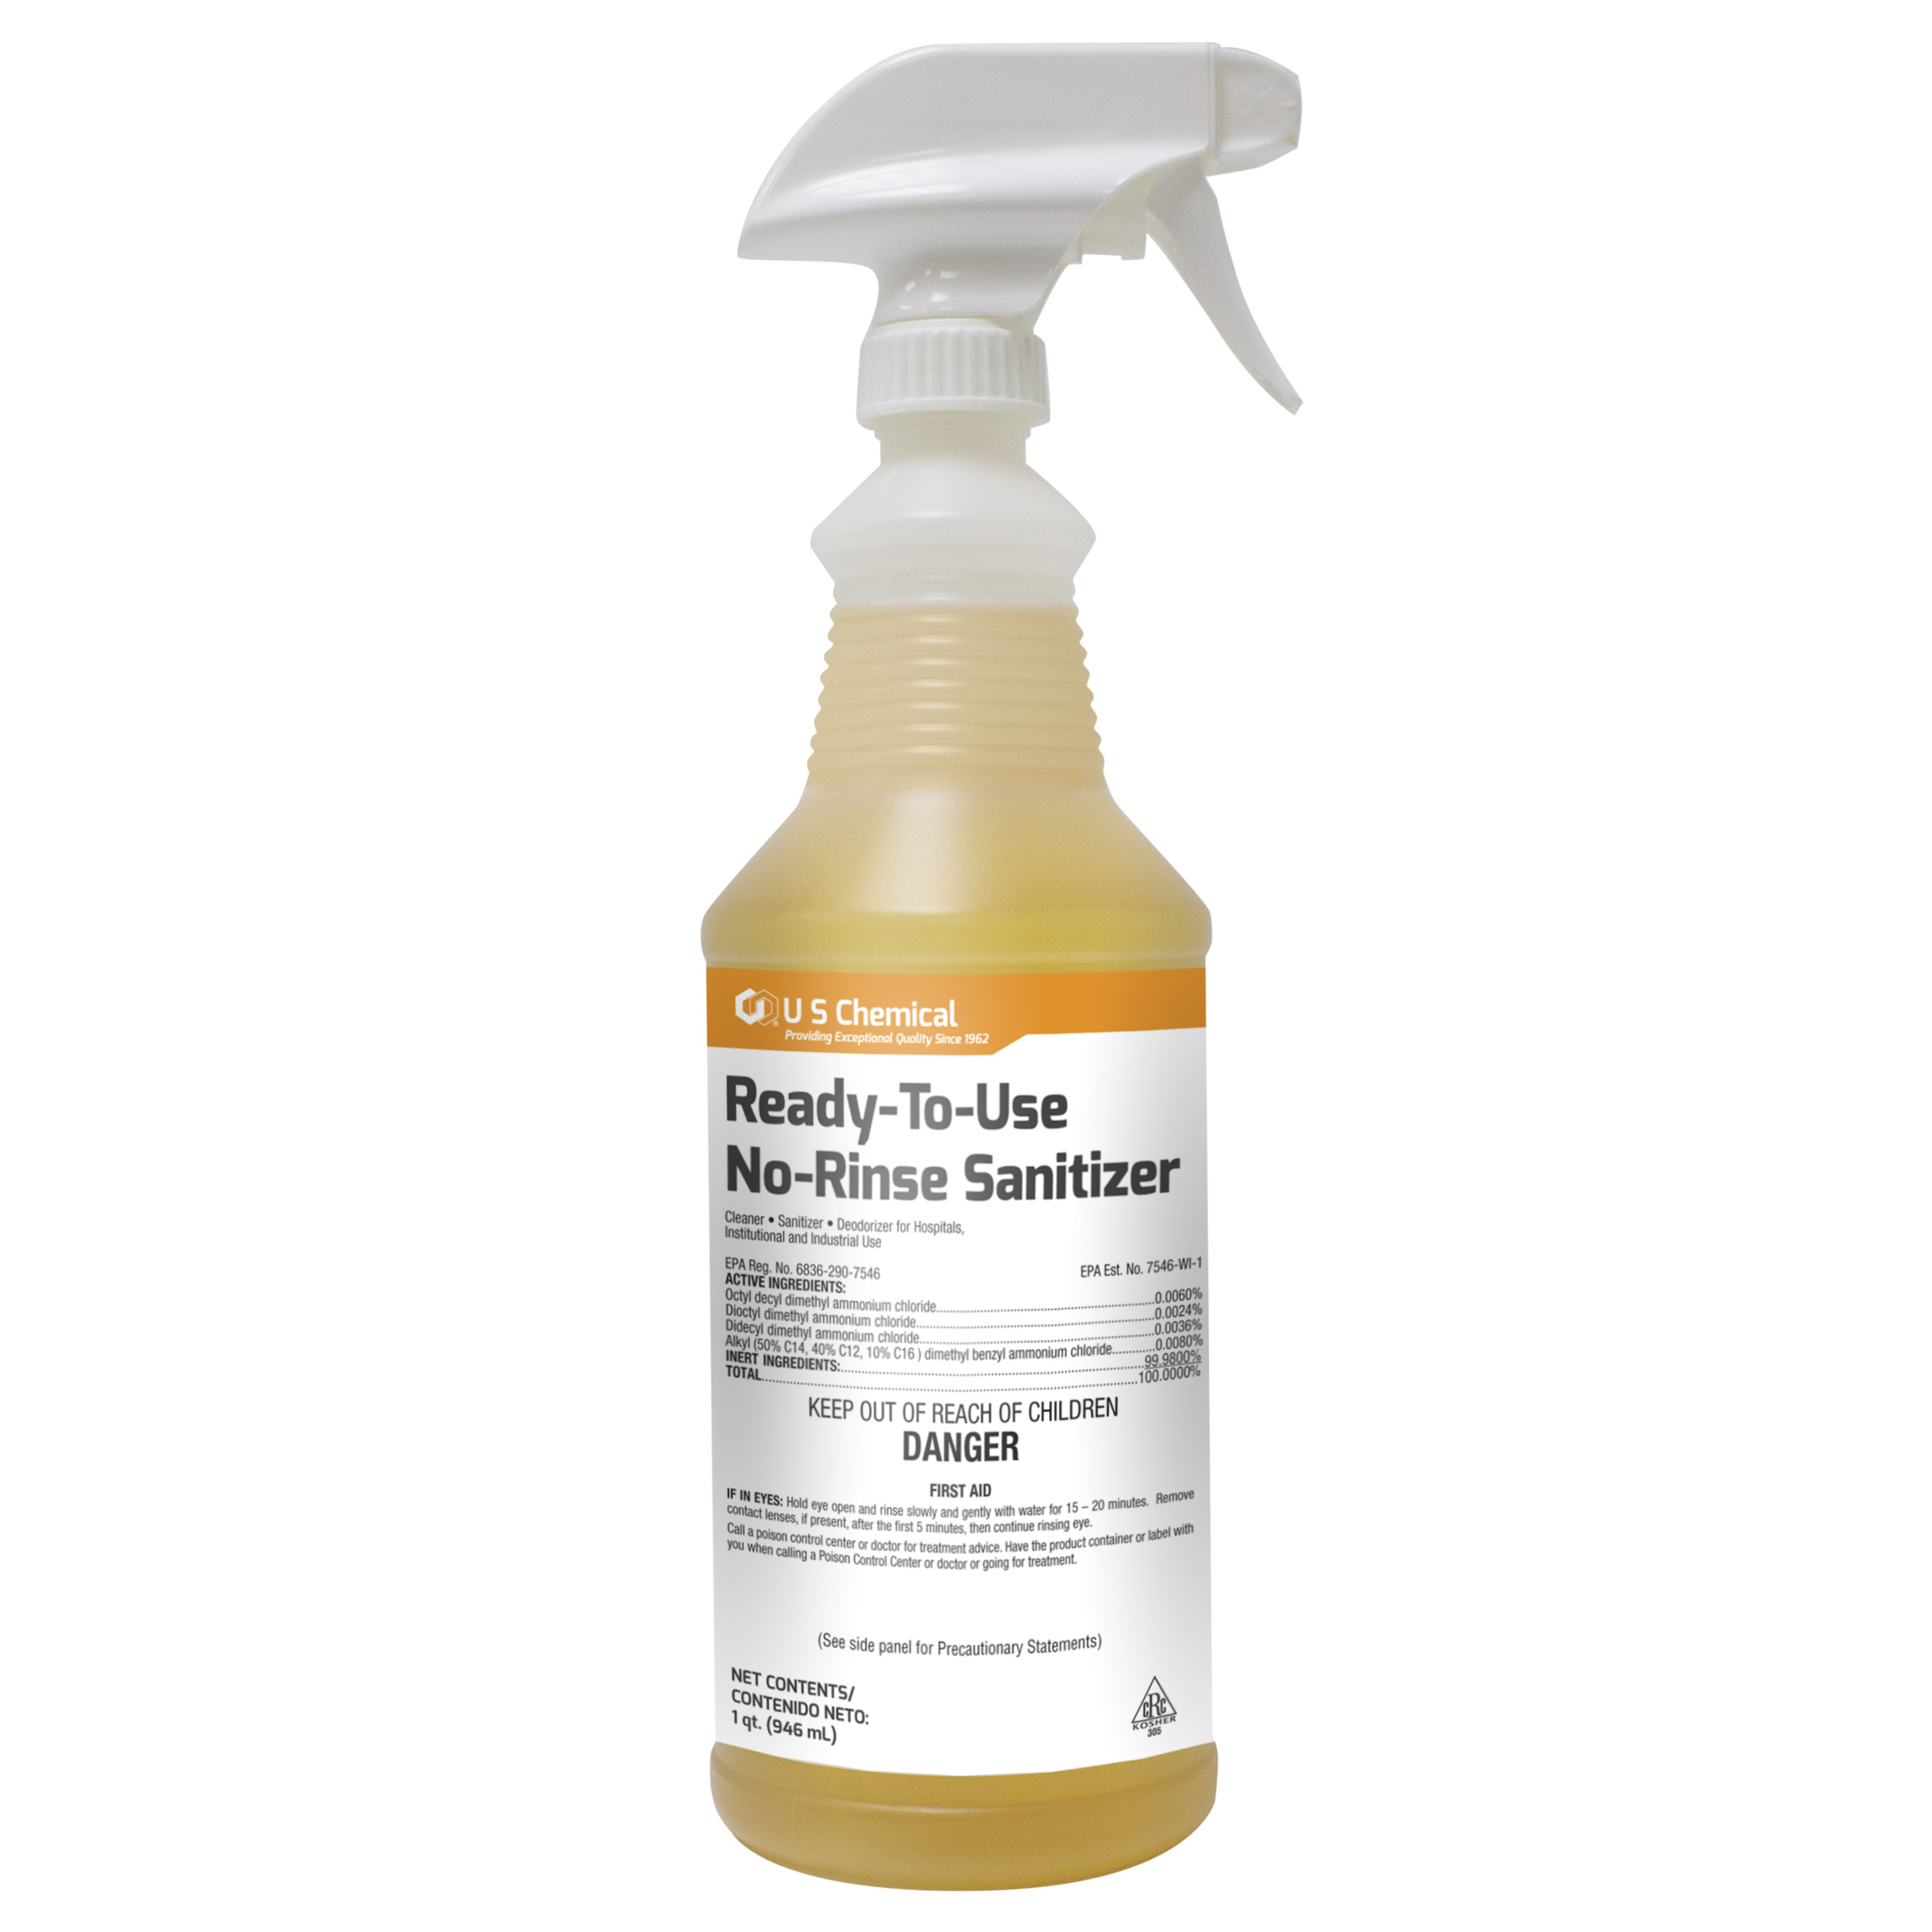 077418_READY_TO_USE_NO_RINSE_SANITIZER_1QT